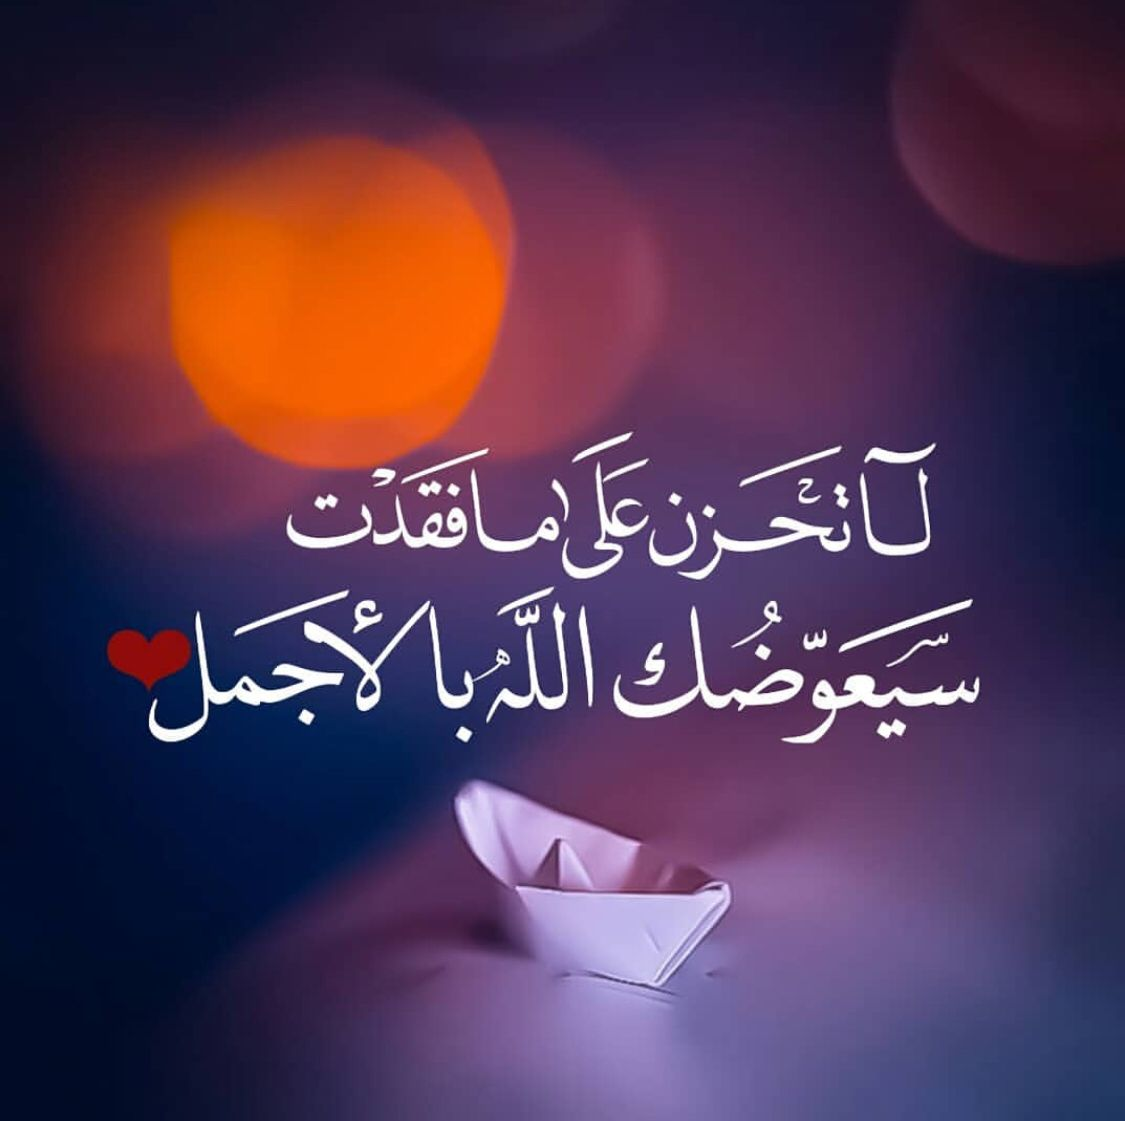 Pin By صورة و كلمة On مواعظ خواطر إسلامية Life Quotes Wise Quotes Arabic Quotes